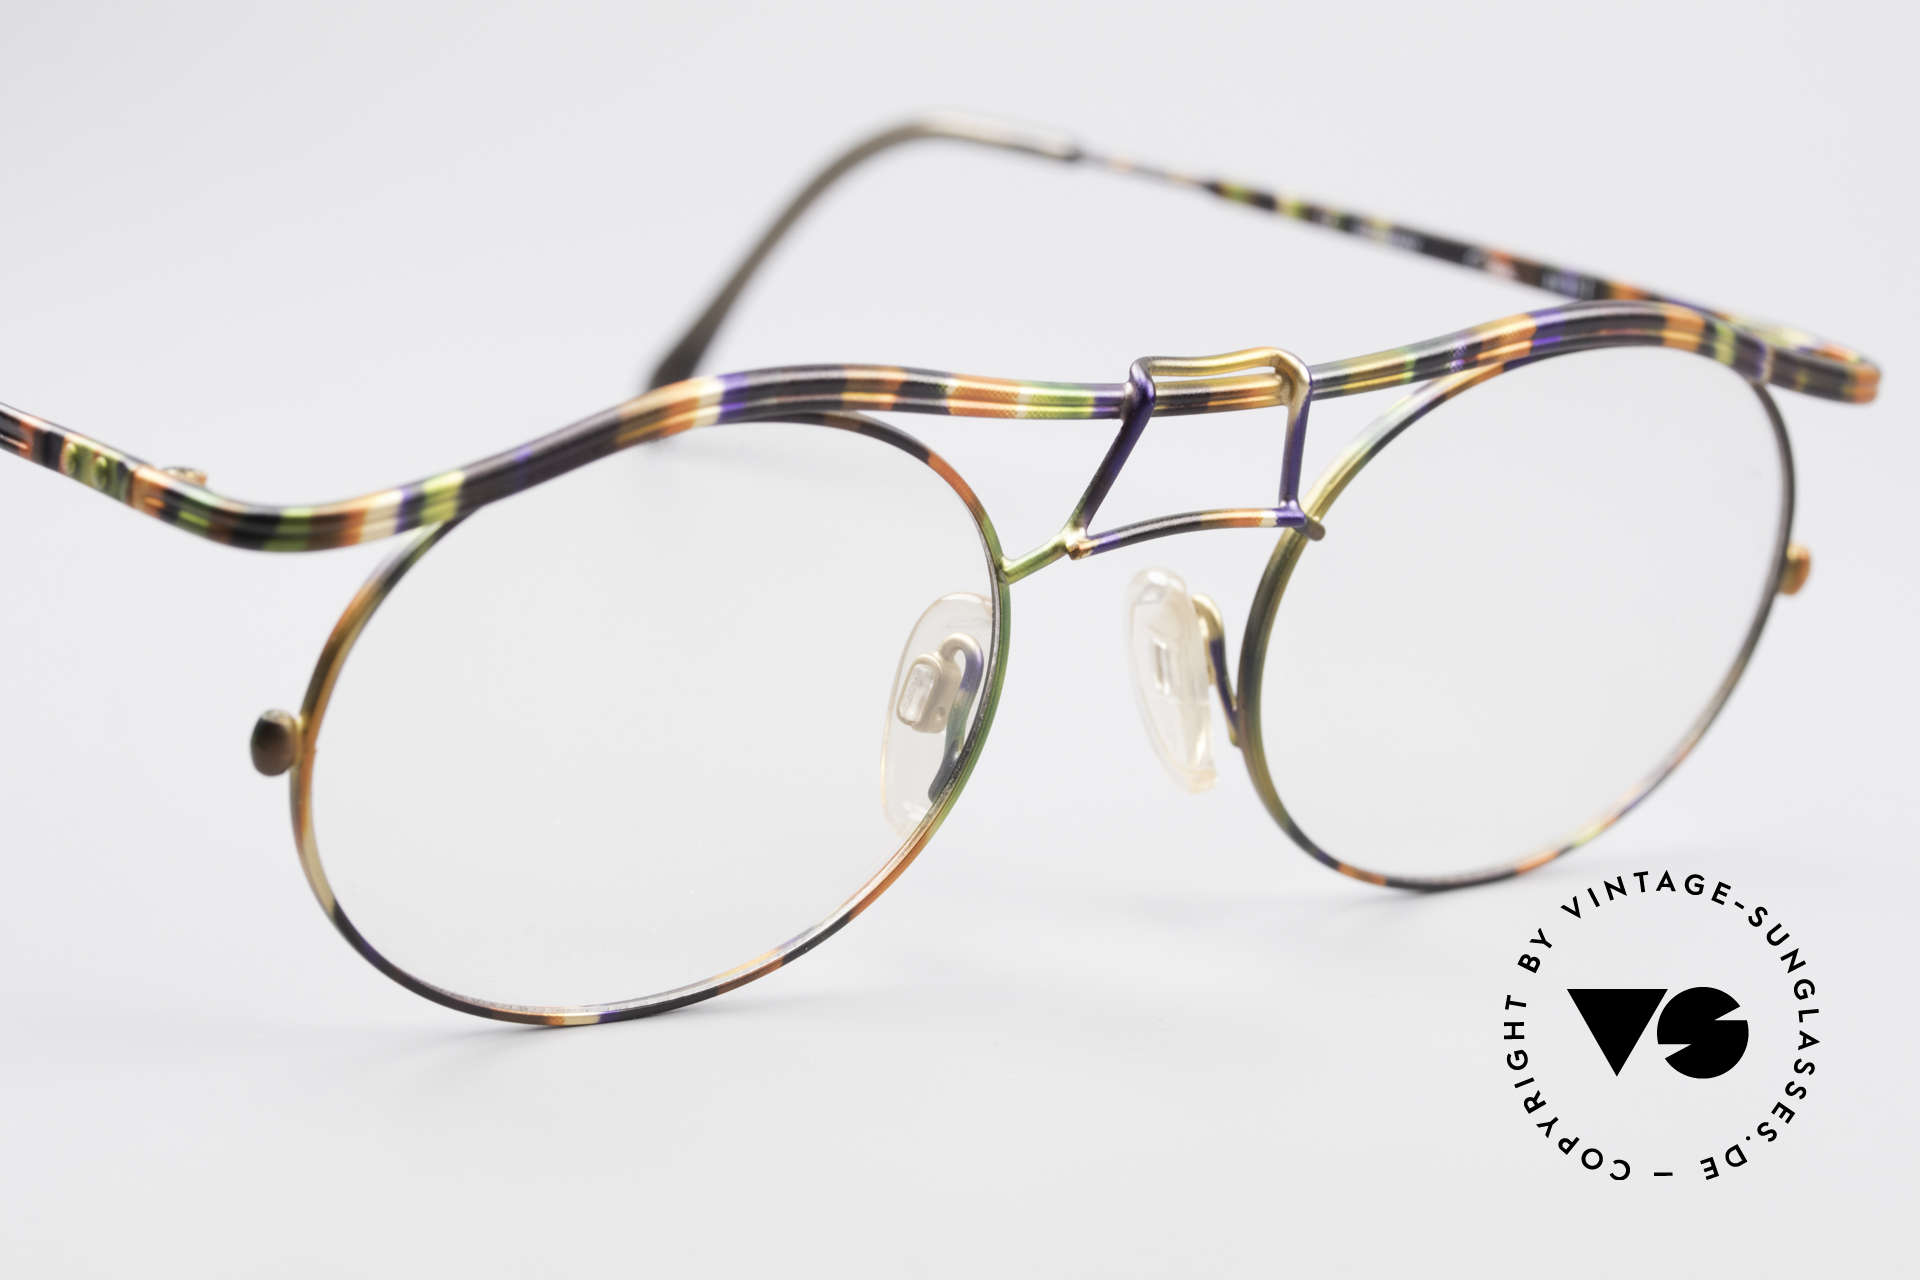 Cazal 1110 - Point 2 90's Industrial Eyeglass-Frame, NO RETRO FASHION; but an old ORIGINAL from 1999, Made for Men